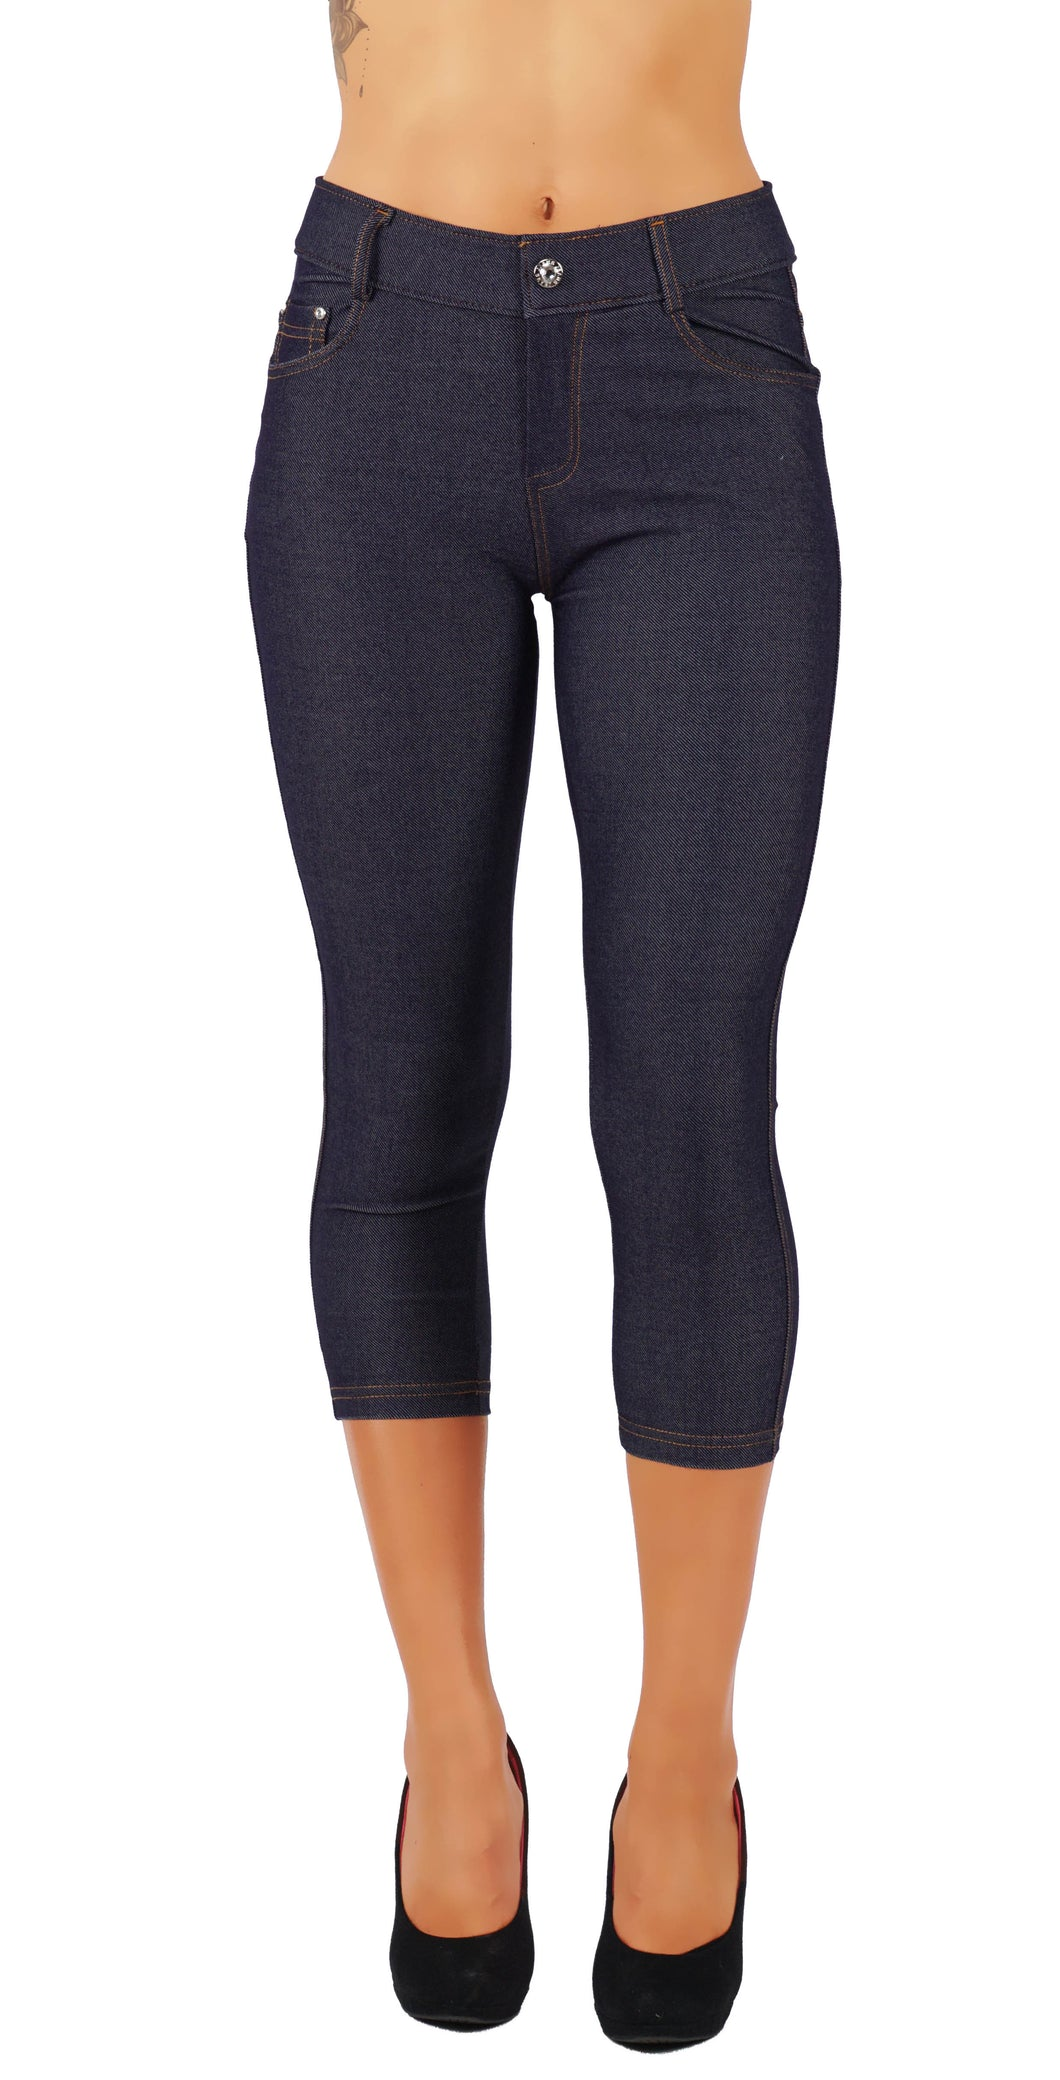 Fit Division Women's Jean Look Cotton Blend Jeggings Pull up Tights Slimming Capri FD817